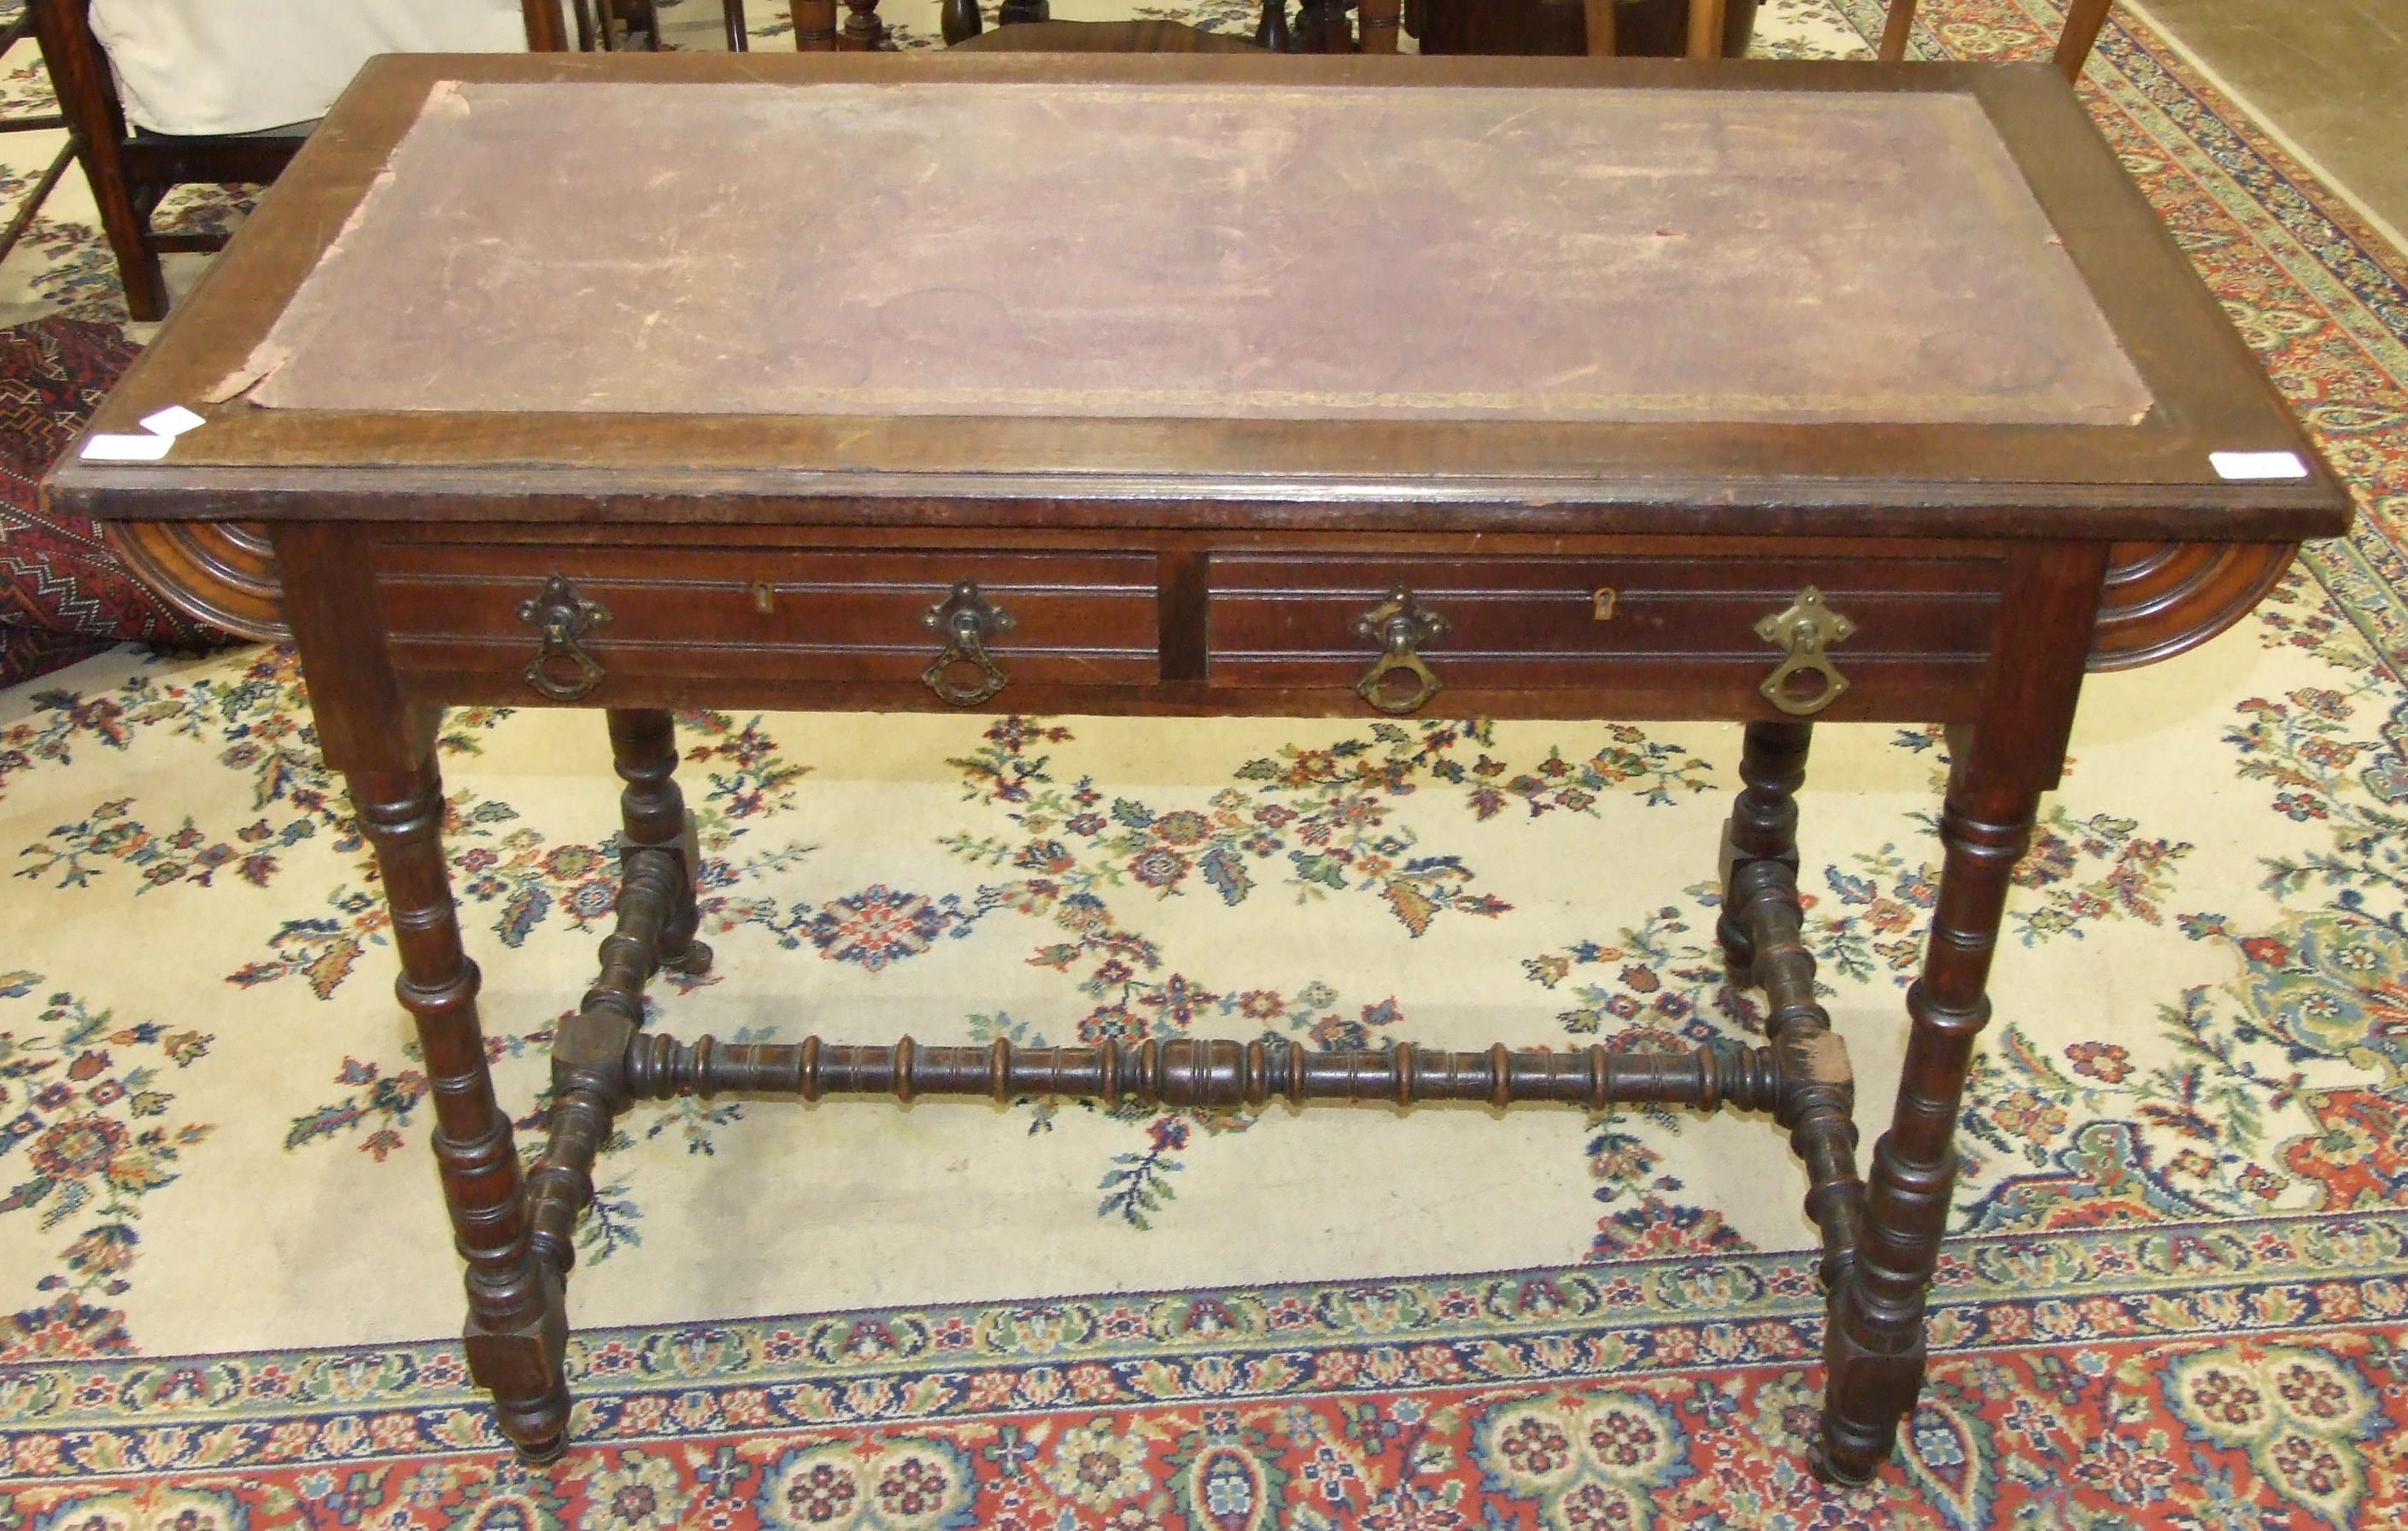 Lot 5 - An Edwardian stained hardwood writing table, the rectangular top with leather inset above two